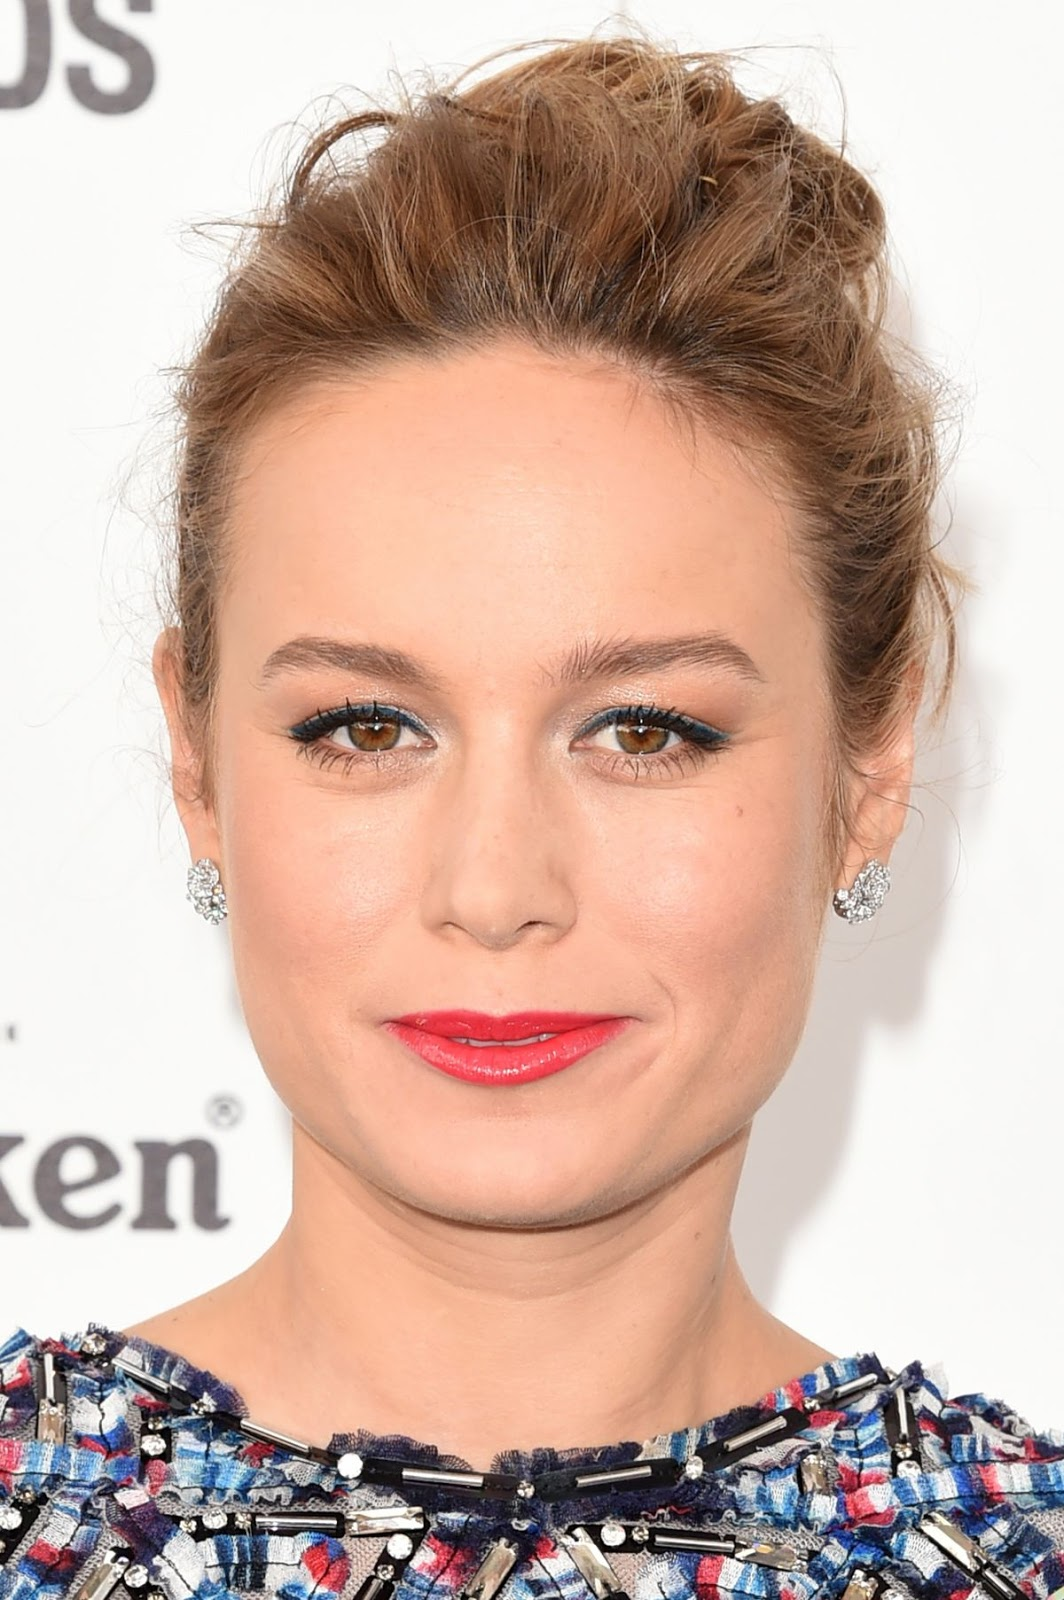 HQ Hot & Sexy Wallpapers of Marvel Comics Actress Brie Larson at Film Independent Spirit Awards Santa Monica